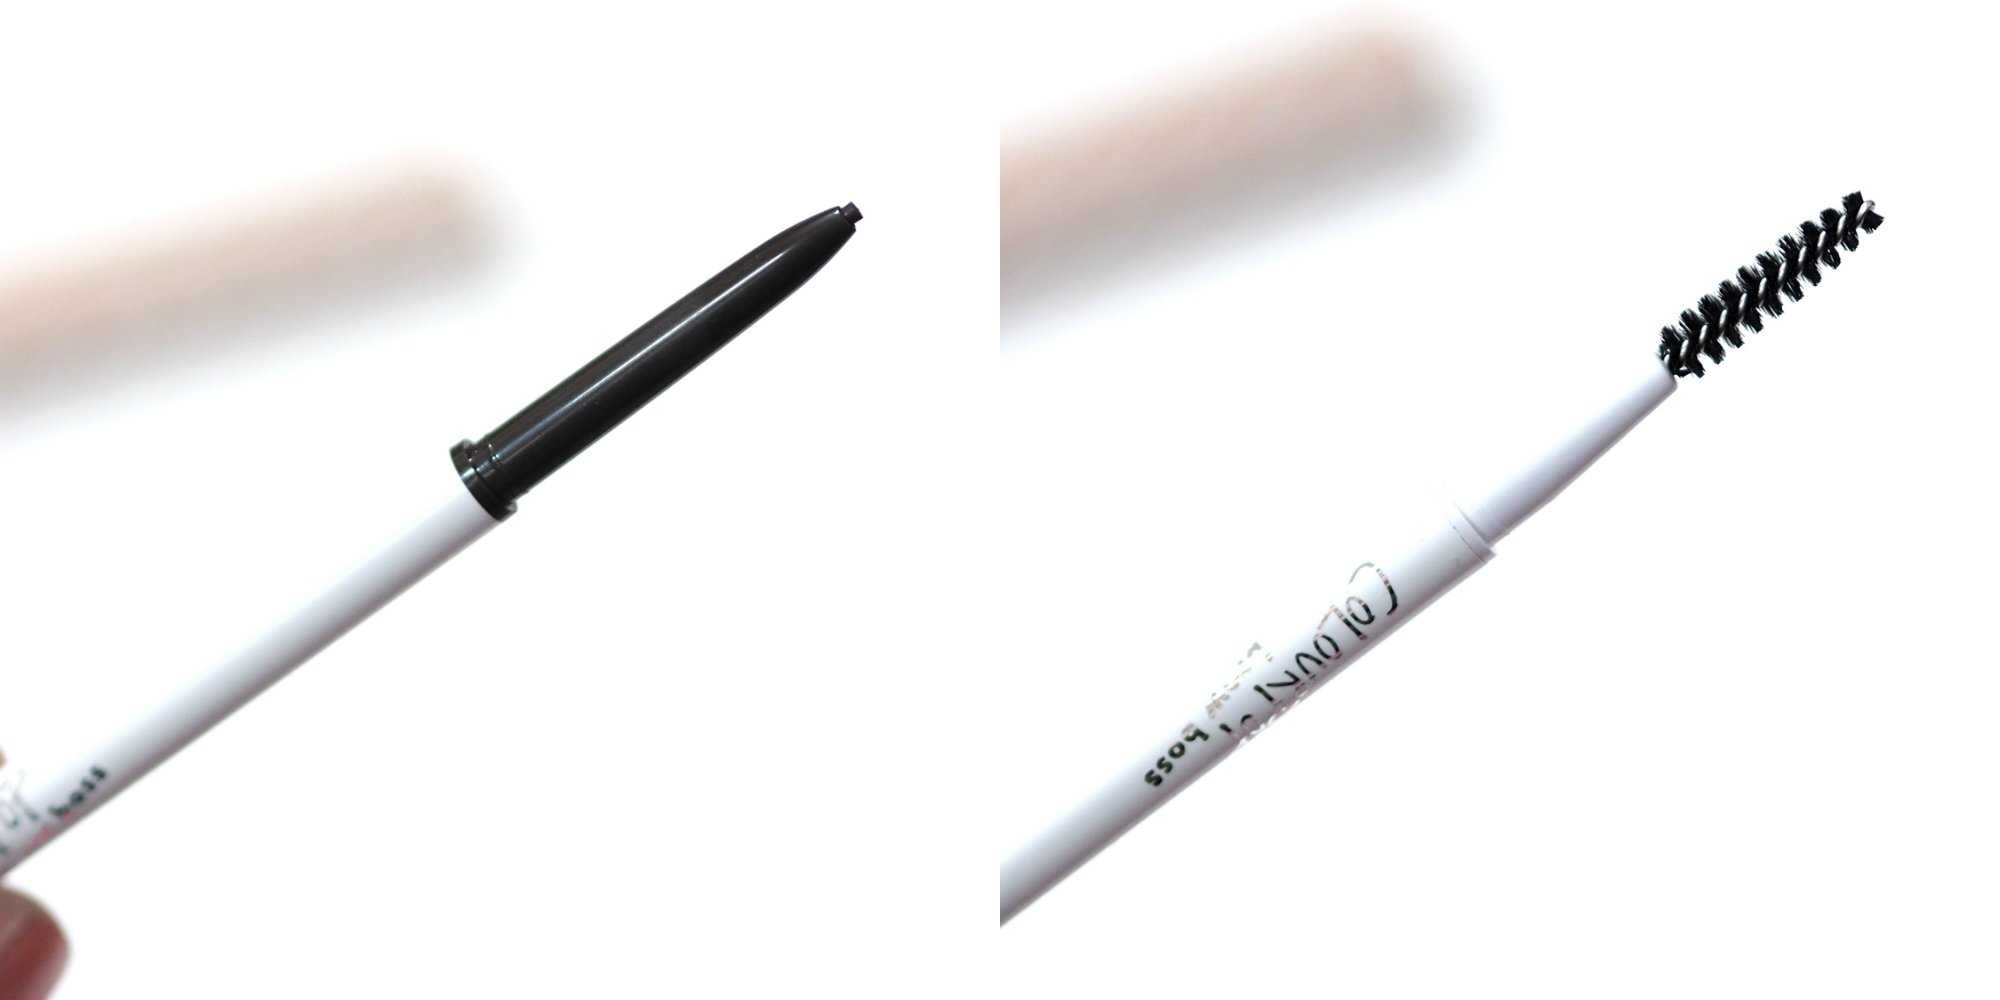 ColourPop Brow Boss Pencil Review and Swatches in Ash Brown, Mechanical Eyebrow Pencil similar to the ABH Brow Wiz (2)